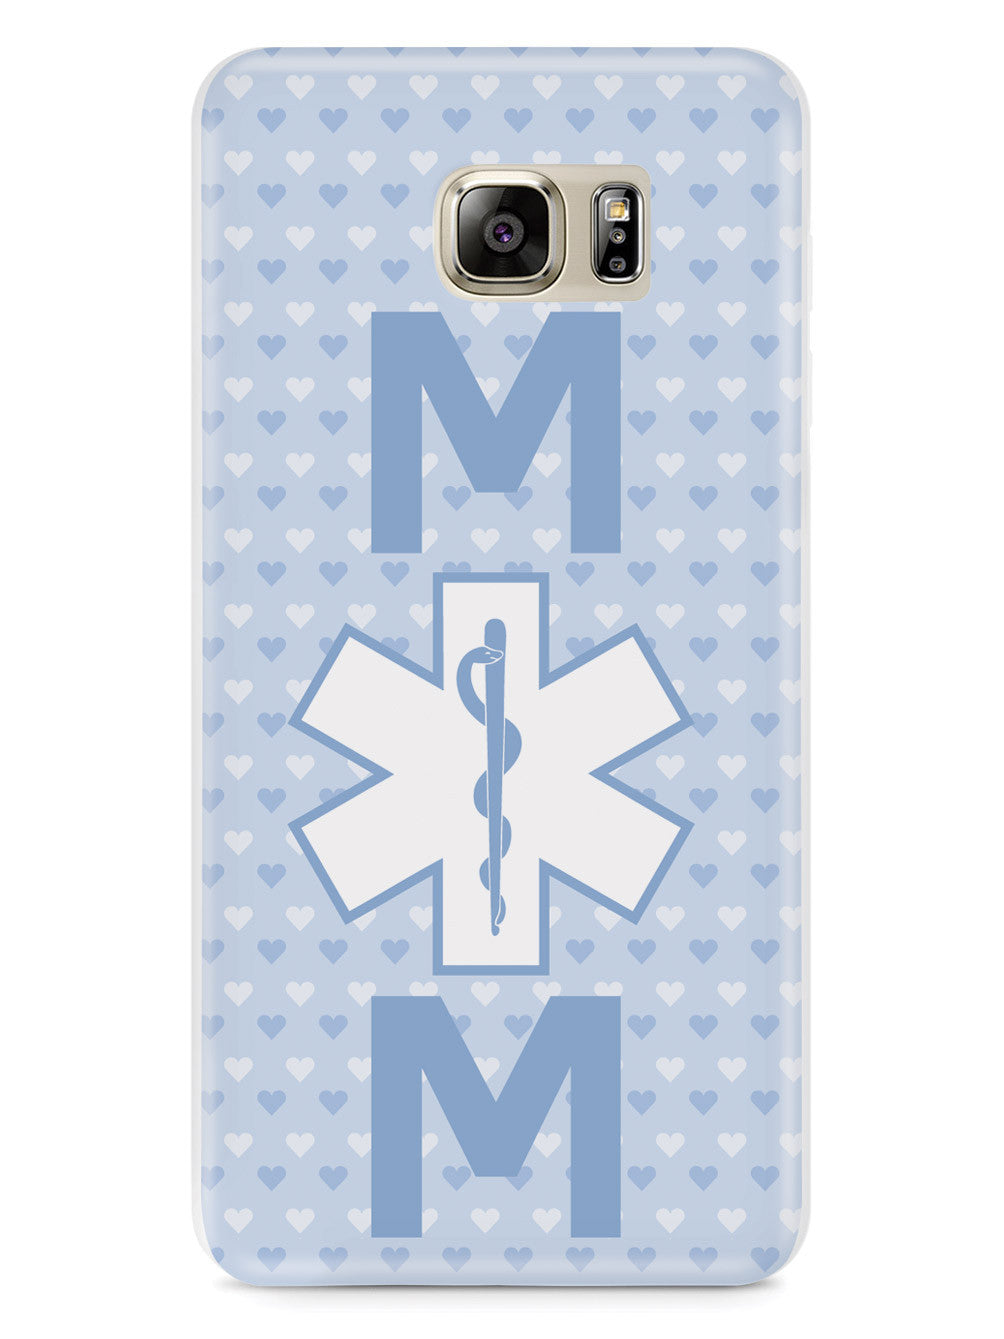 EMS Mom - Emergency Medical Services Case